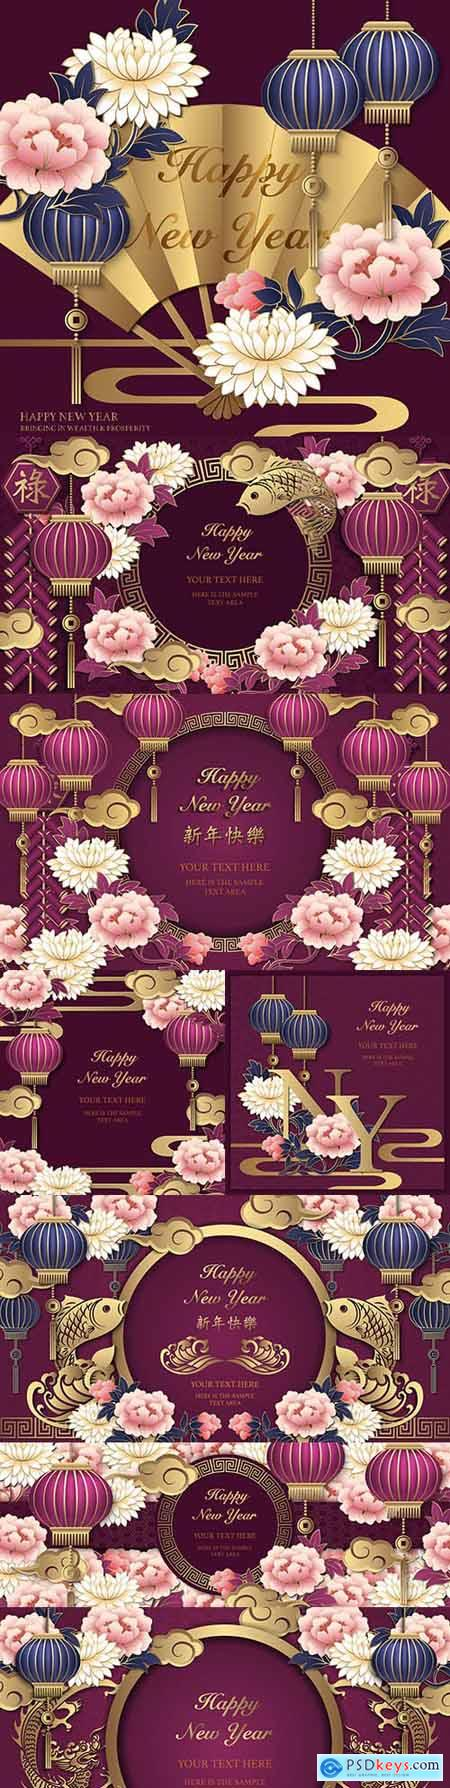 Colorful Chinese New Year 2021 design illustration